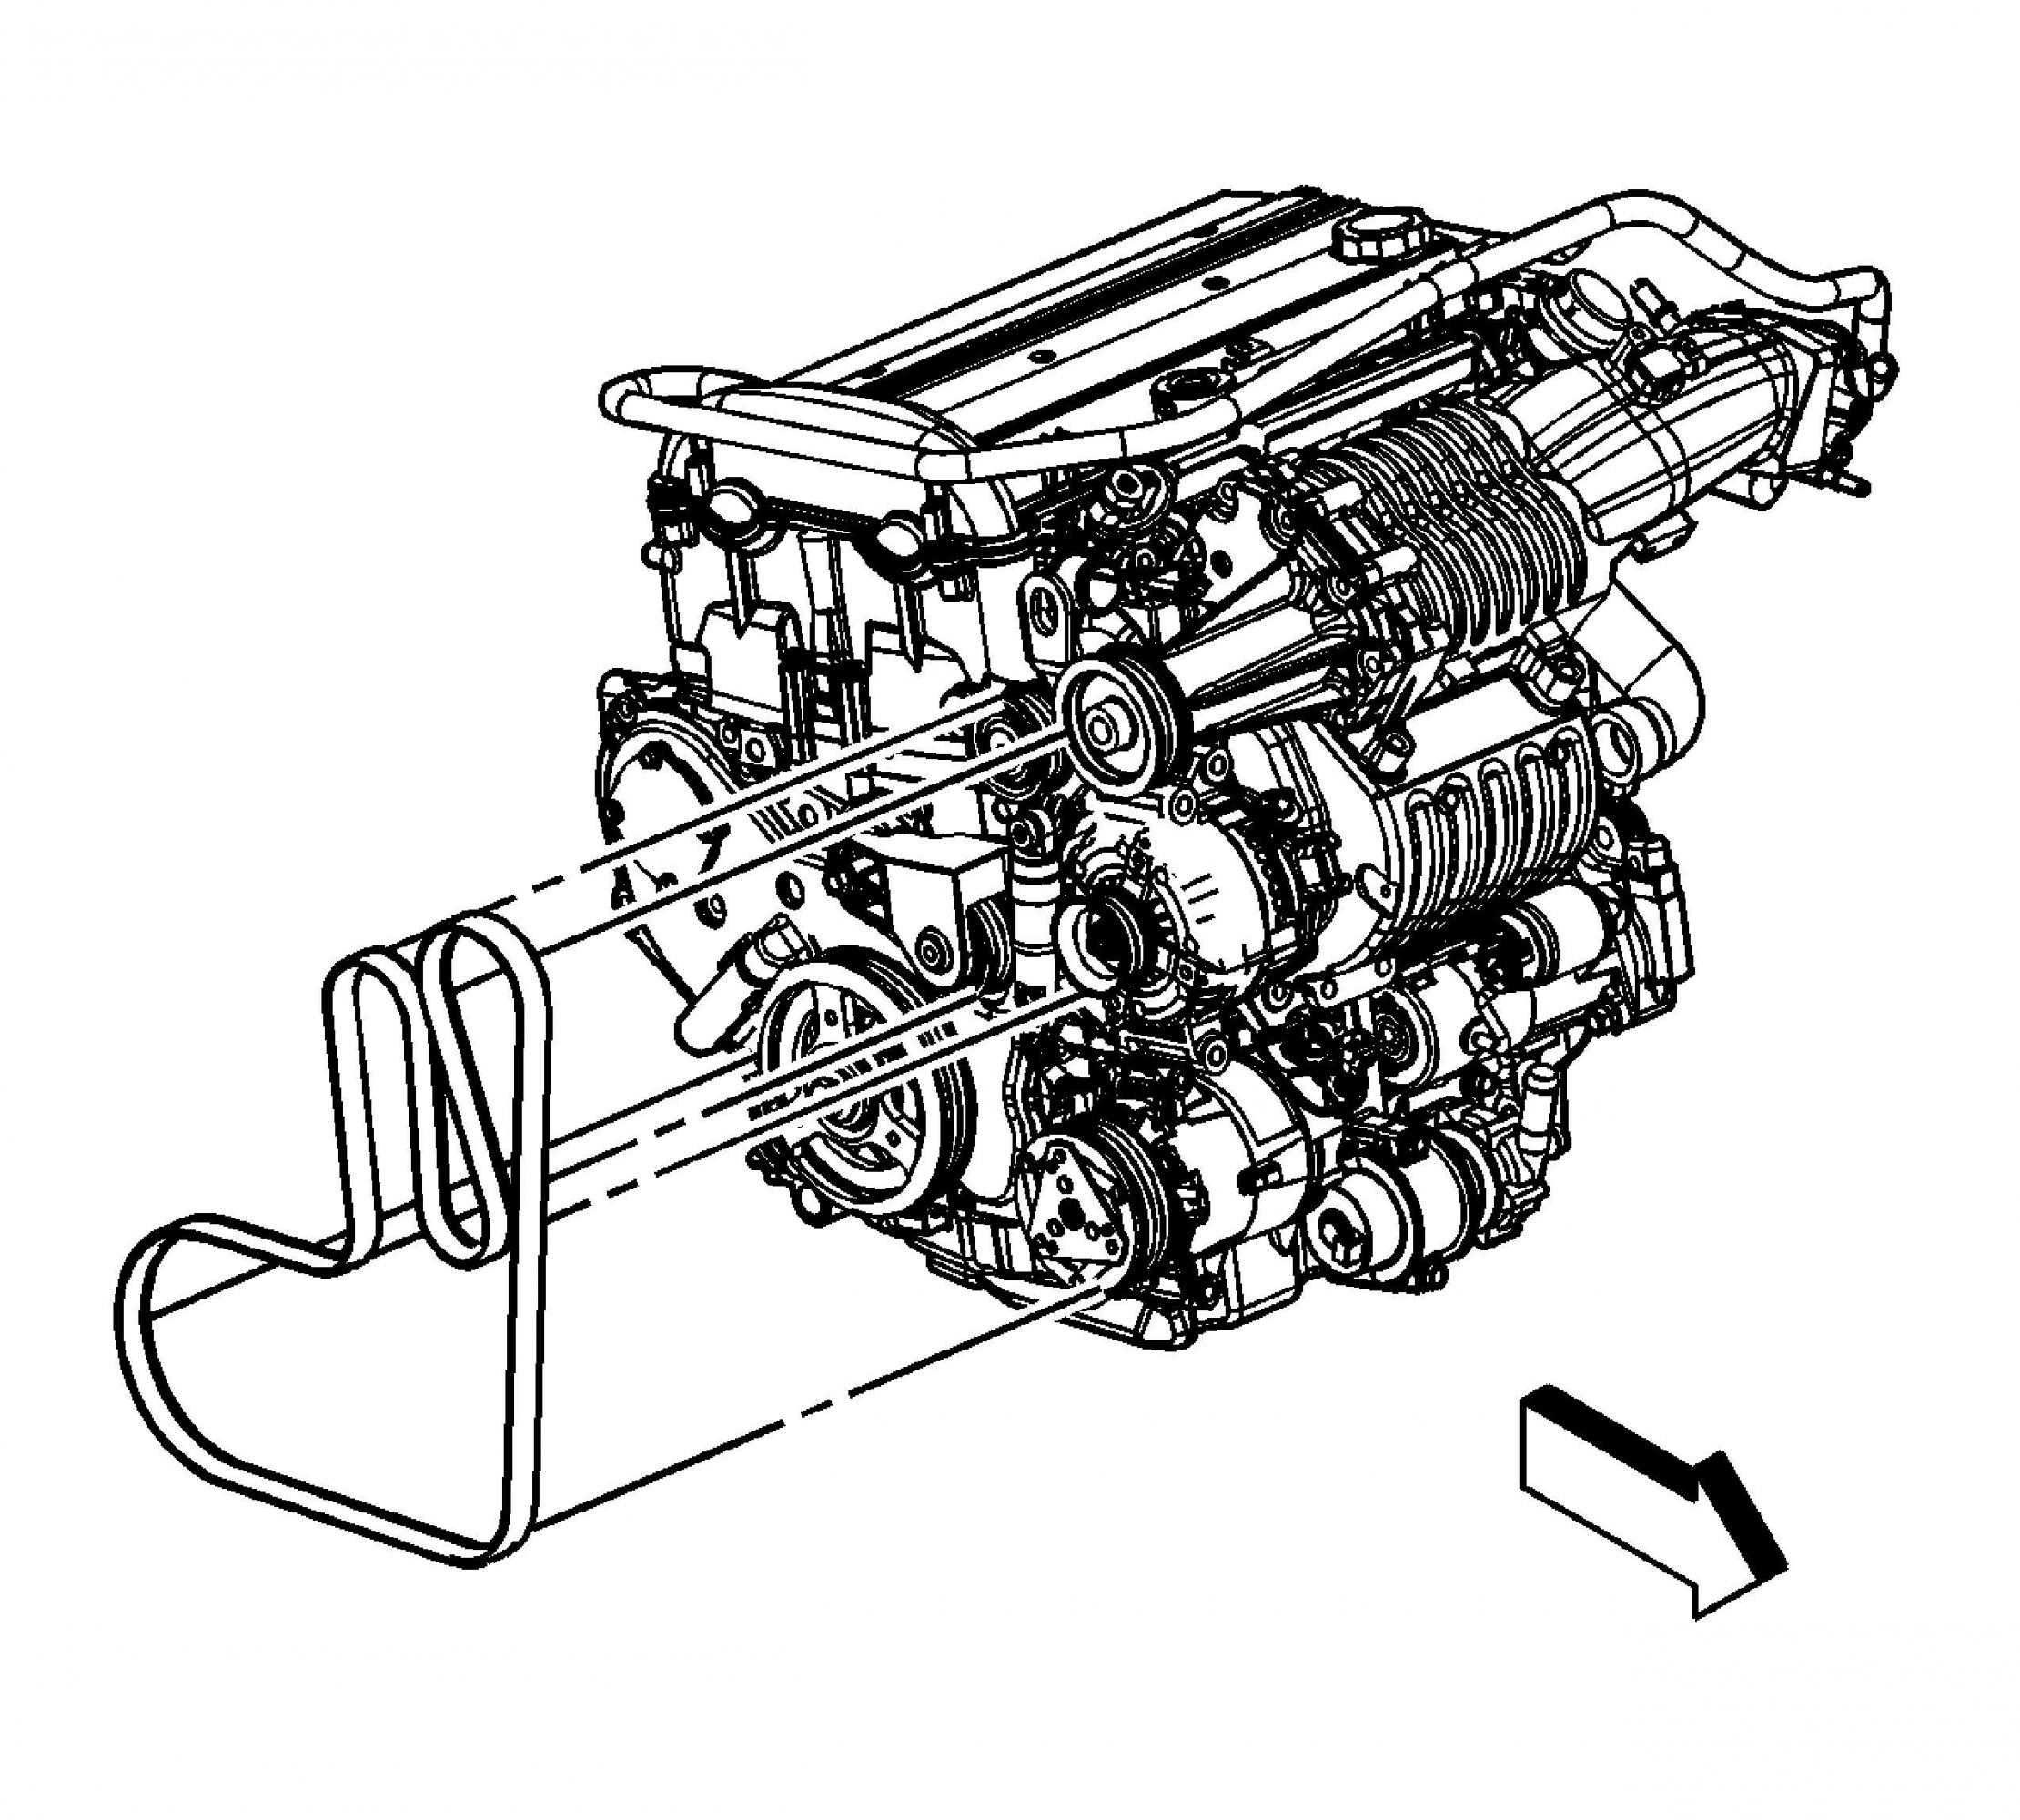 2007 chevy aveo engine